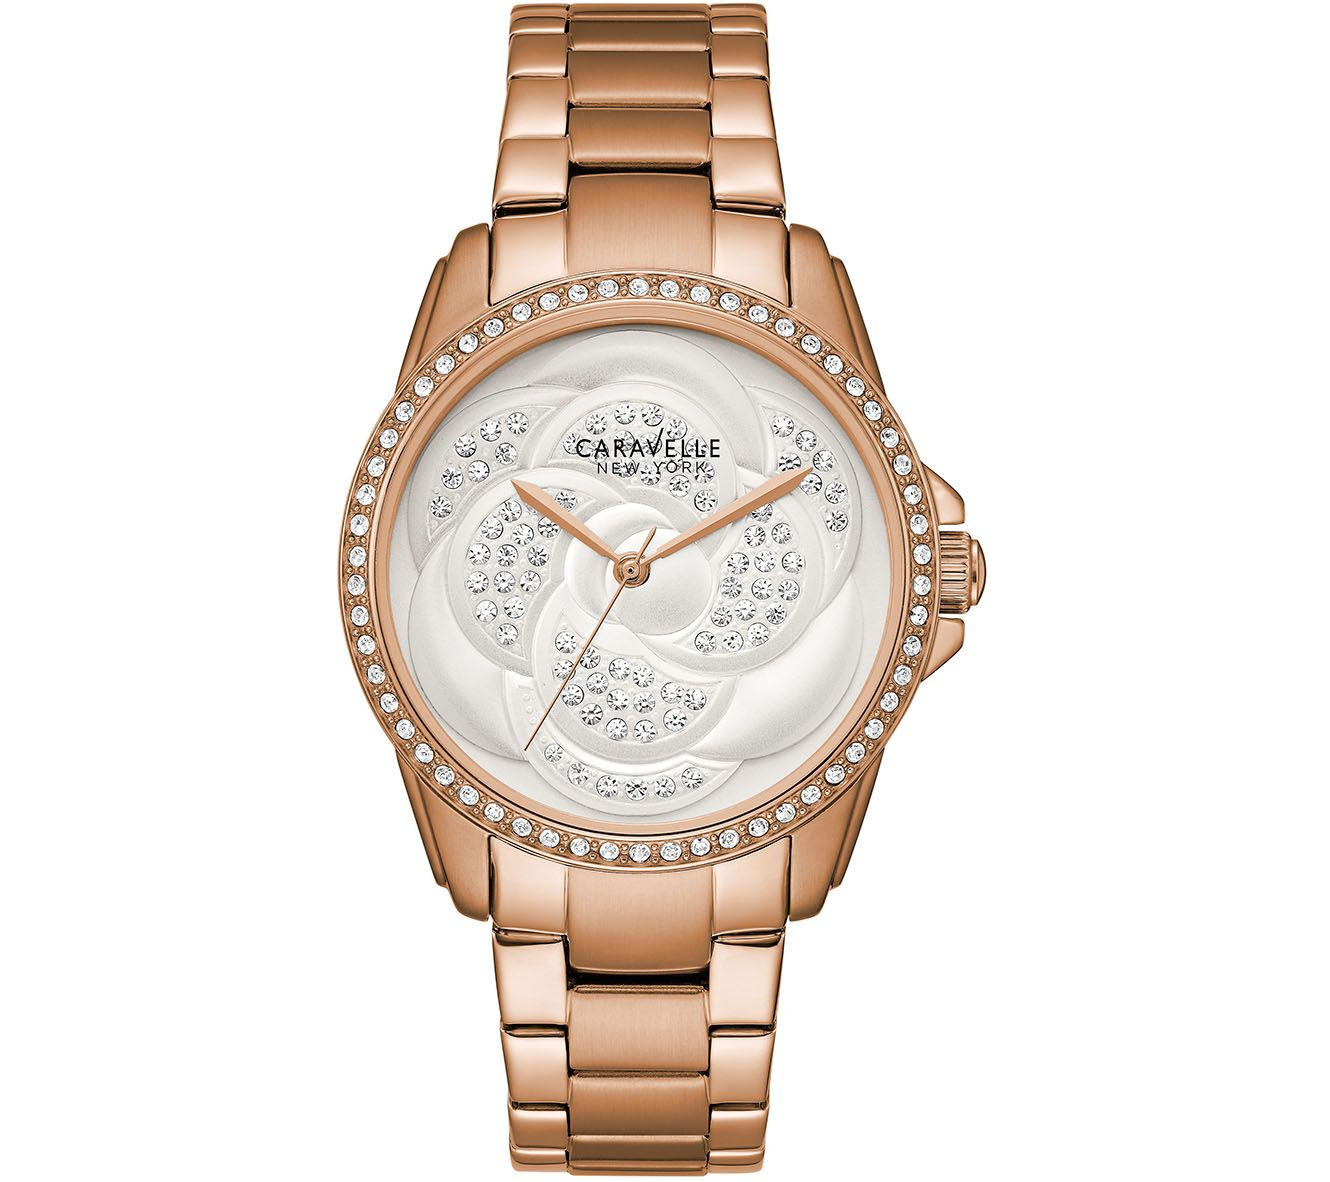 Qvc Bettwäsche Coravelle Caravelle New York Women 39s Rosetone Crystal Watch Qvc